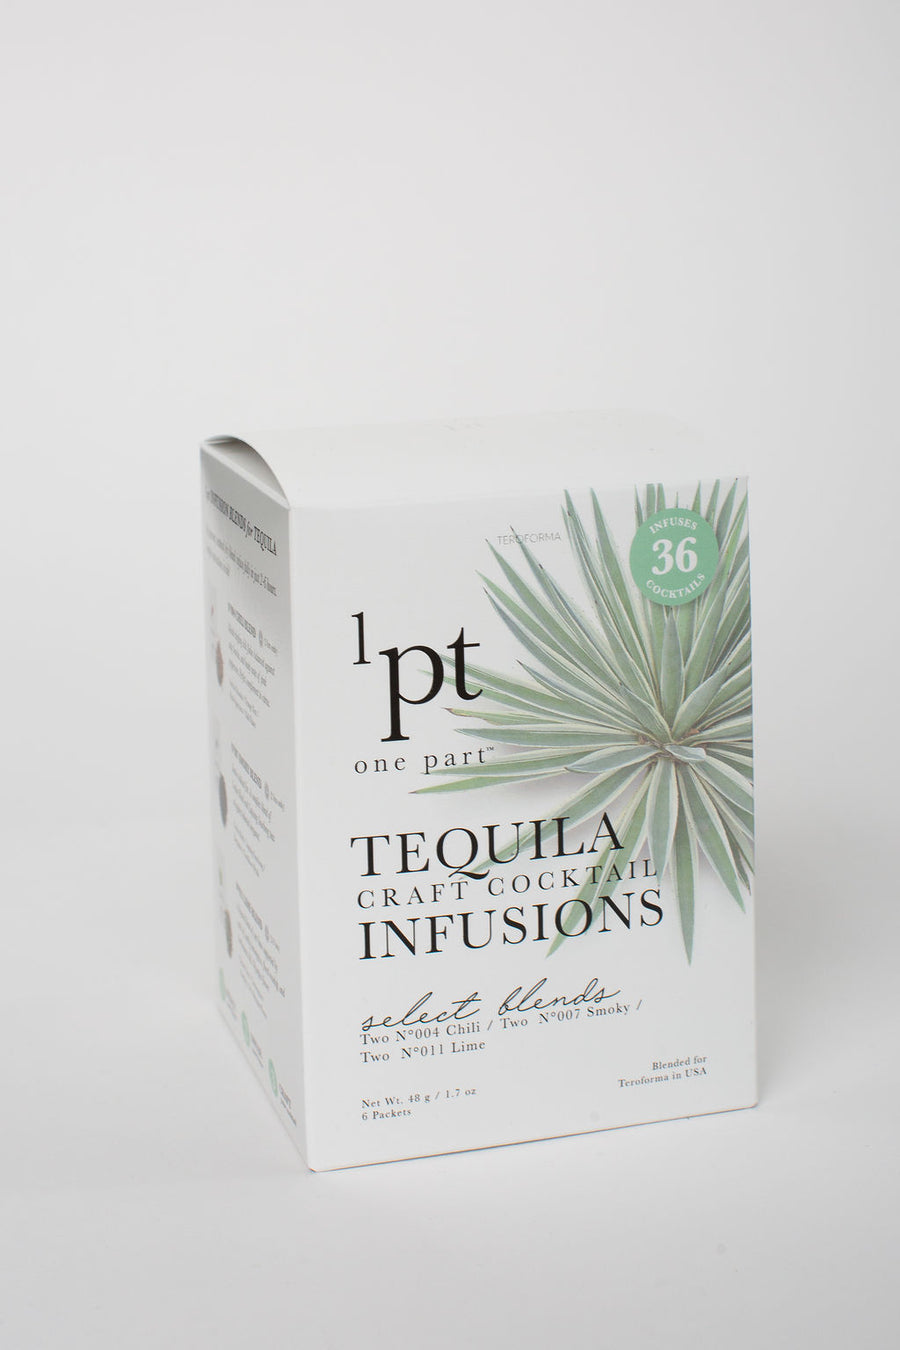 1Pt Craft Cocktail Infusions - Tequila